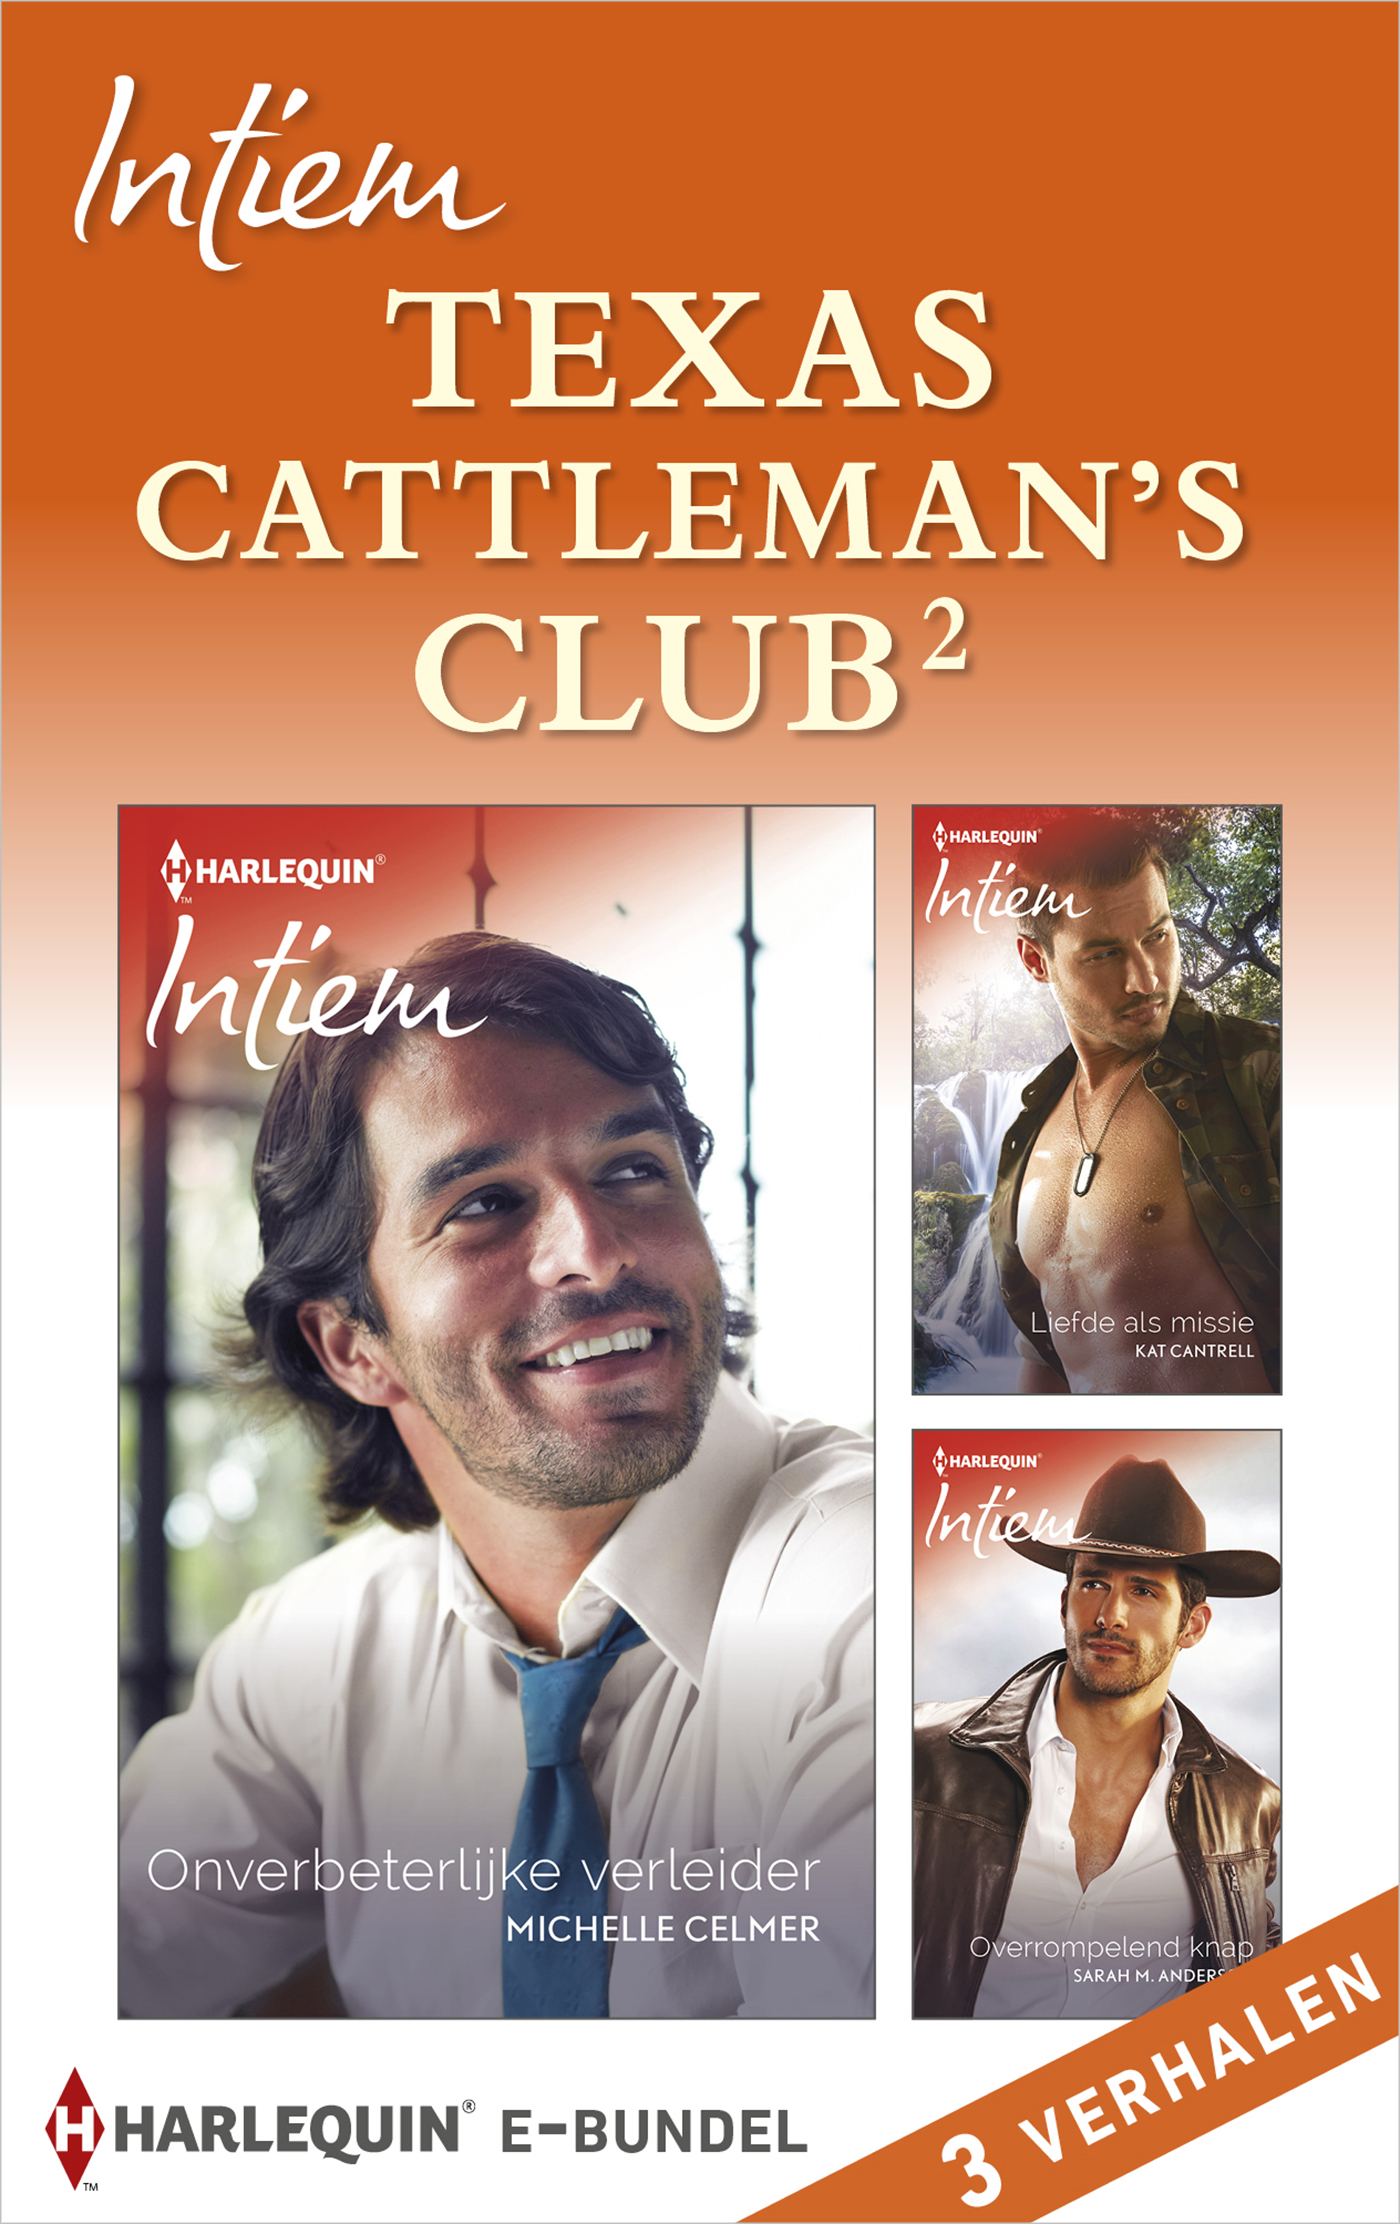 Texas Cattleman's Club 2 (3-in-1)